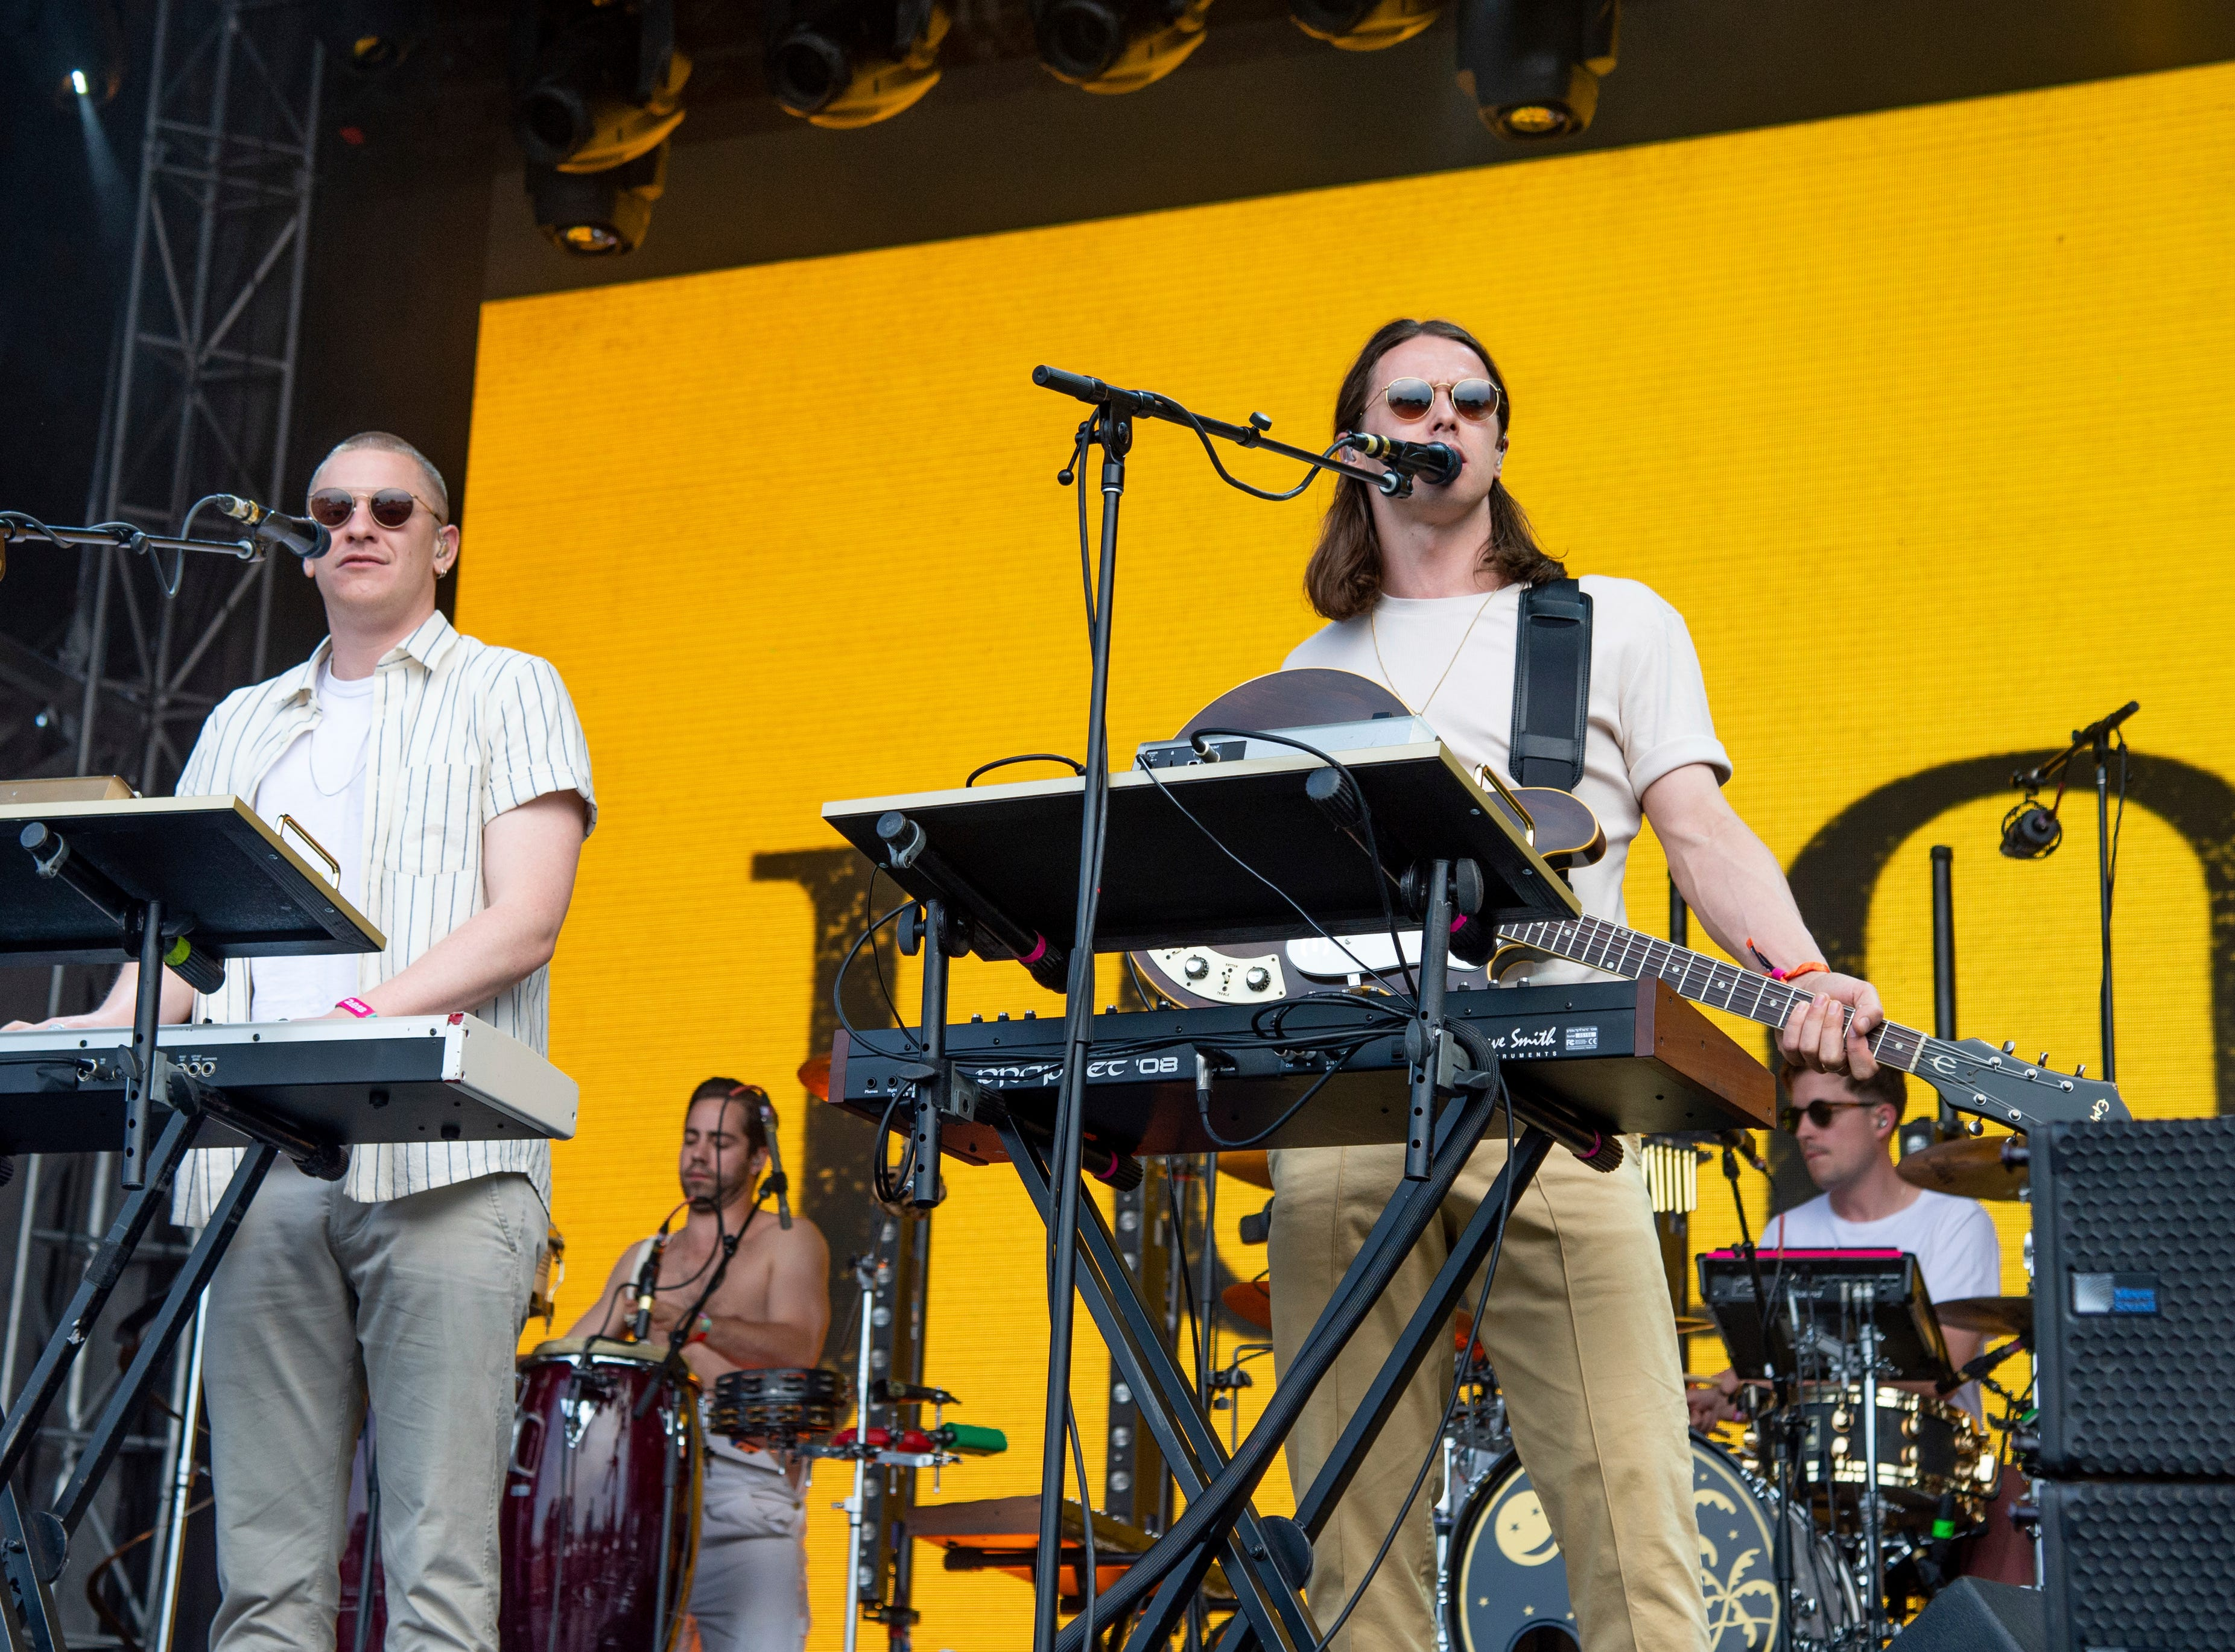 Joshua James Lloyd-Watson, left, and Tom McFarland of Jungle perform at the Bonnaroo Music and Arts Festival on Sunday, June 10, 2018, in Manchester, Tenn. (Photo by Amy Harris/Invision/AP)